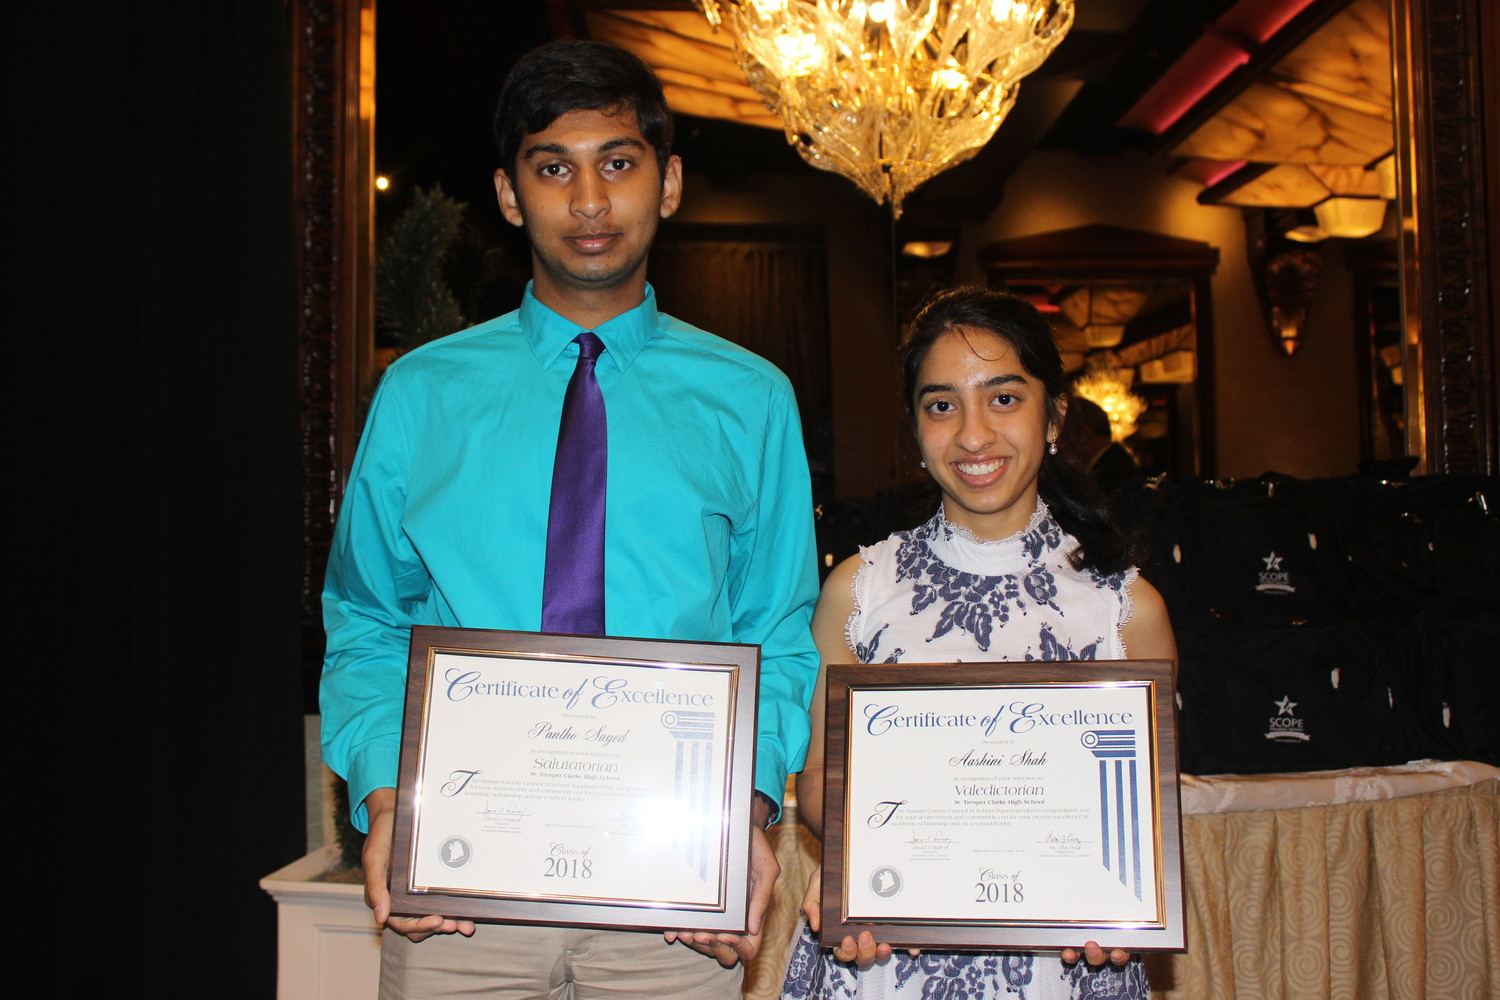 Pantha Sayed, left, is this year's salutatorian at W. T. Clarke High School and Aashini Shah is this year's valedictorian.